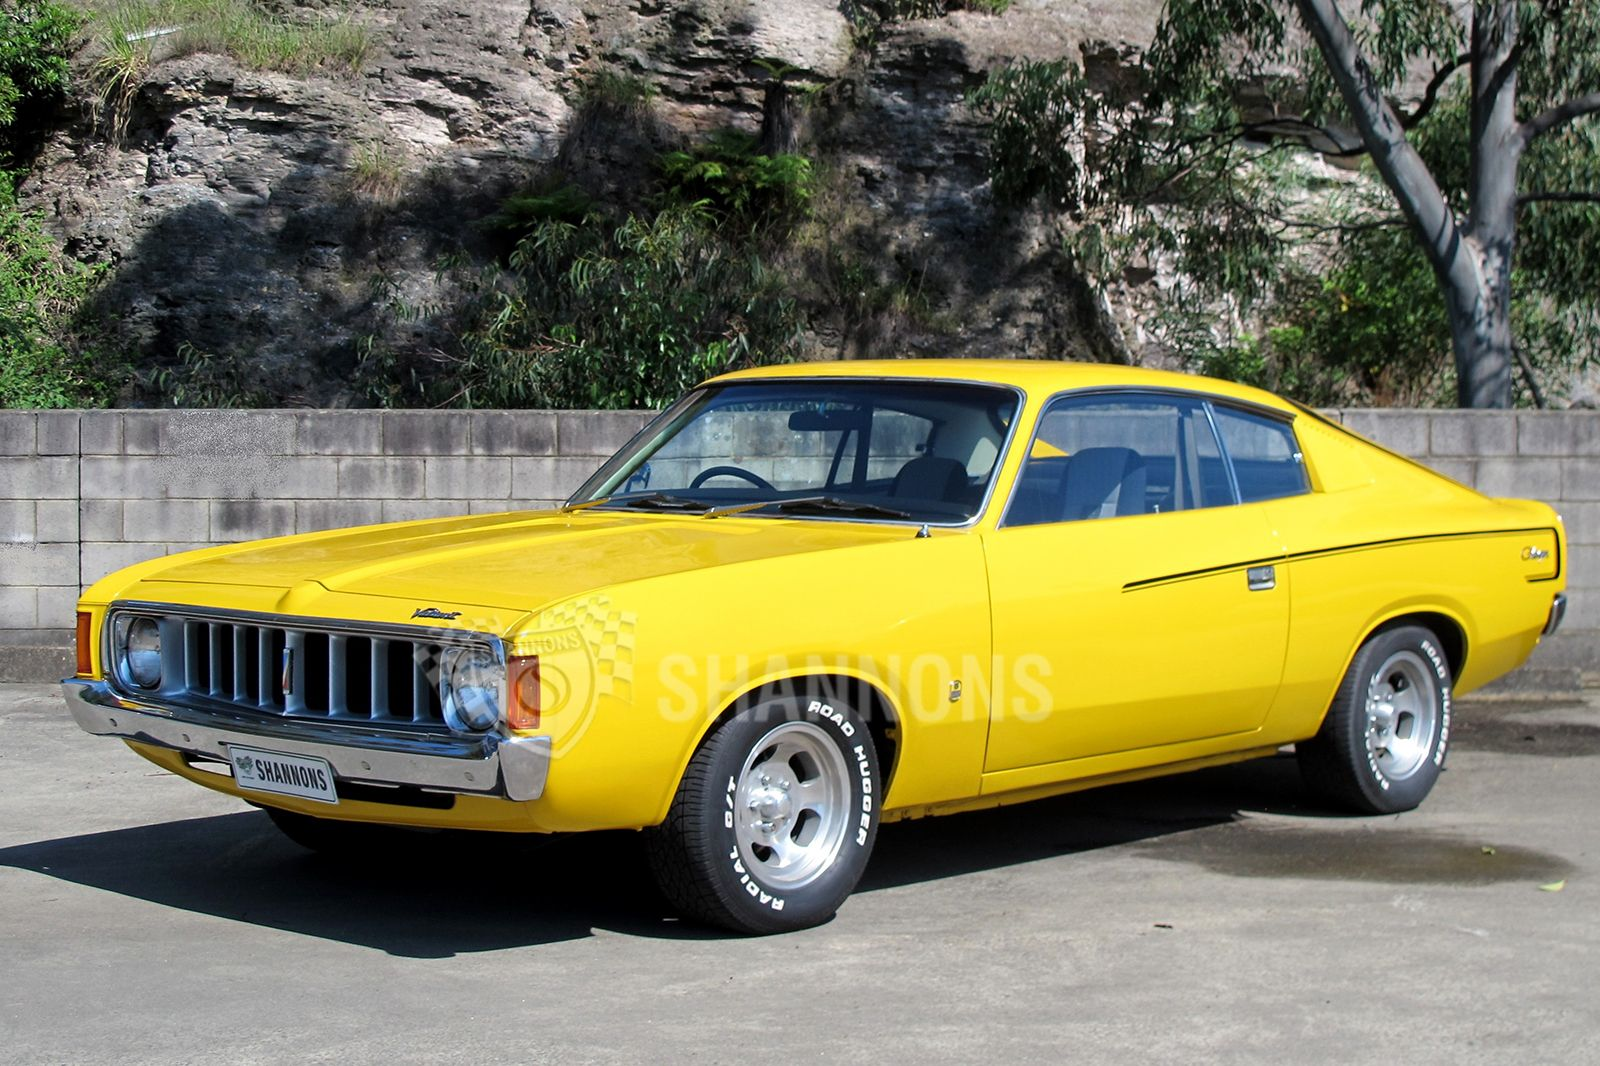 Chrysler Charger #23